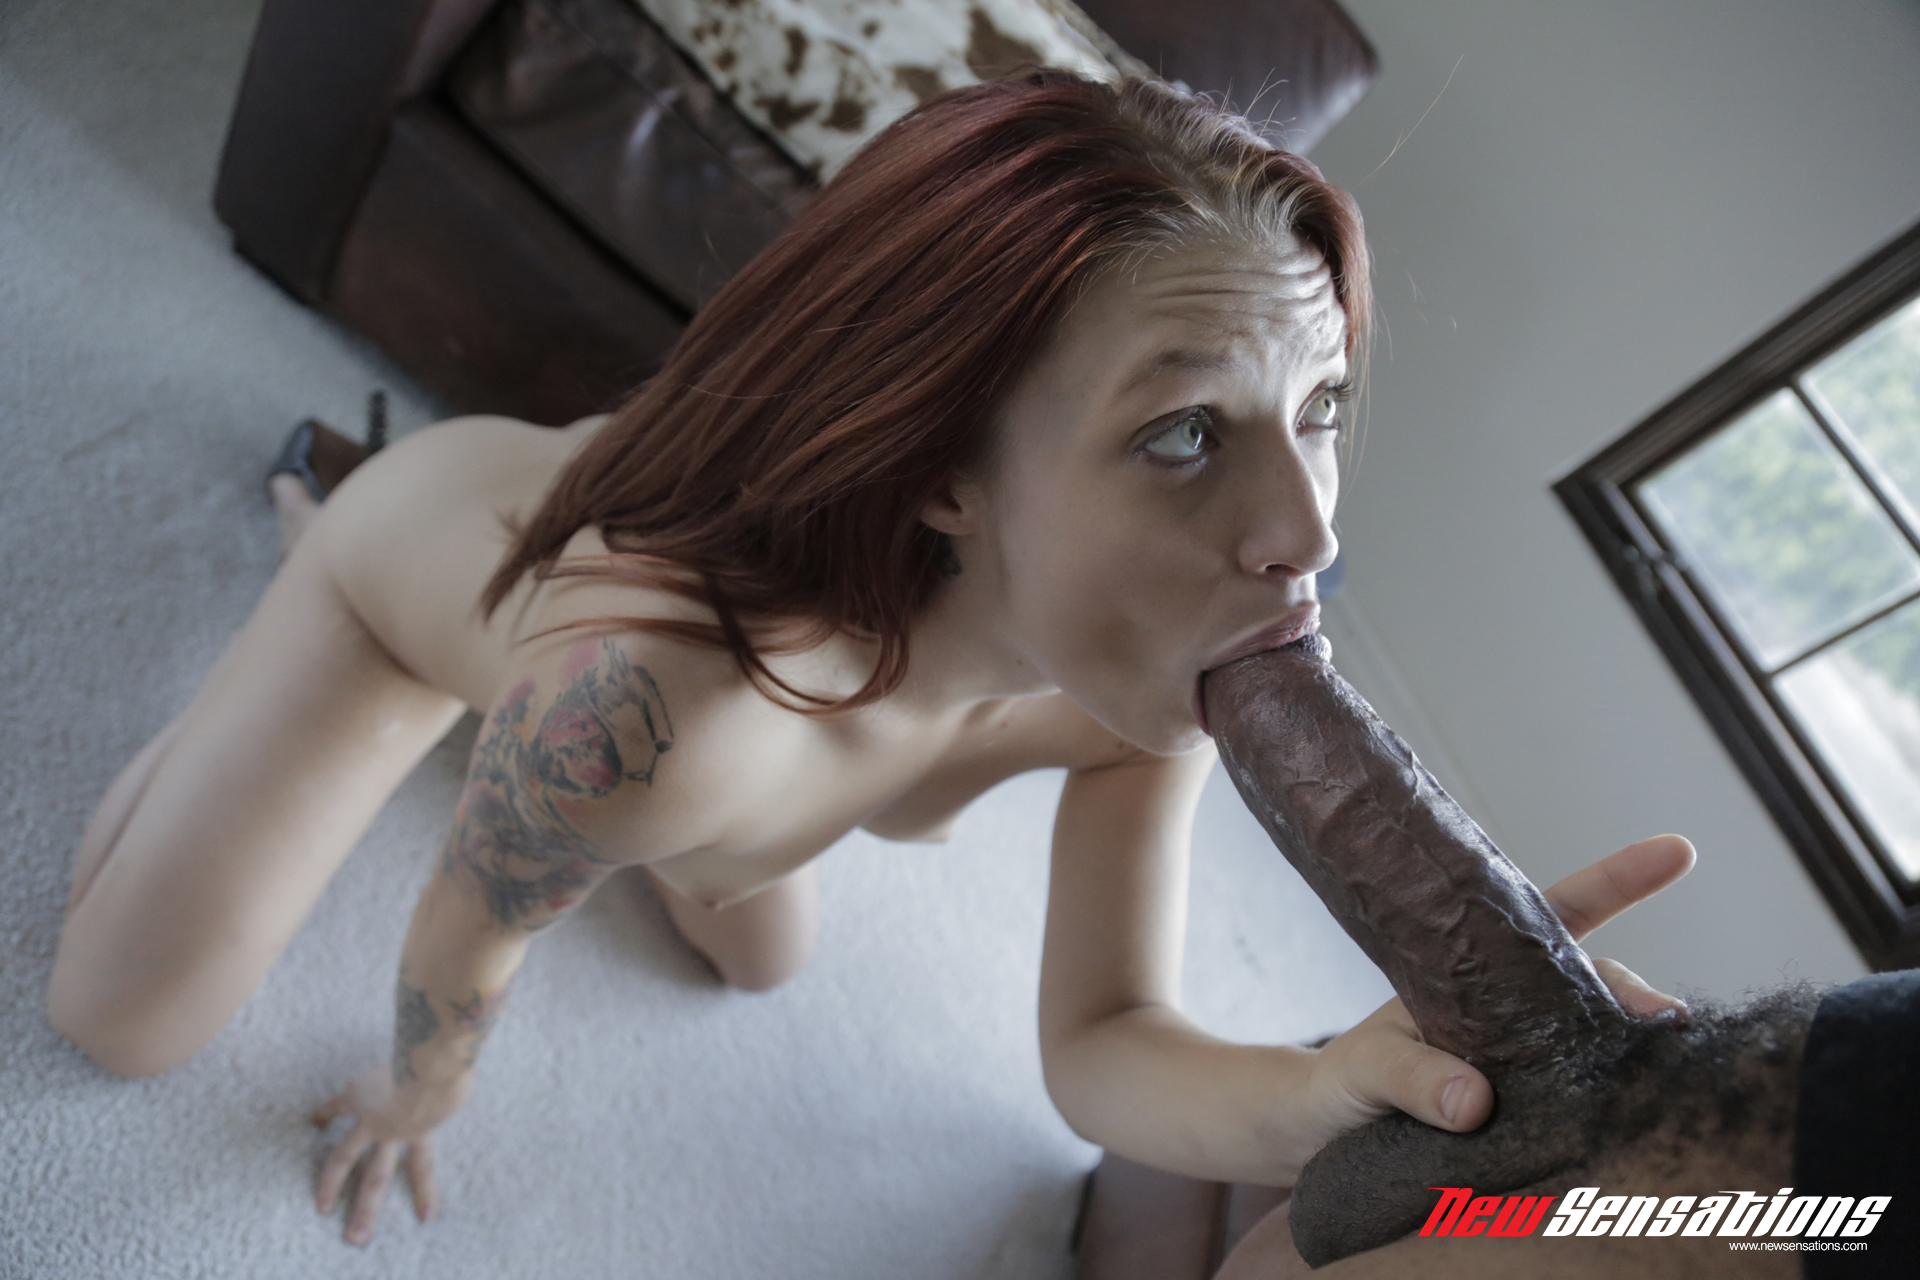 She gets her pussy licked and fucked 5